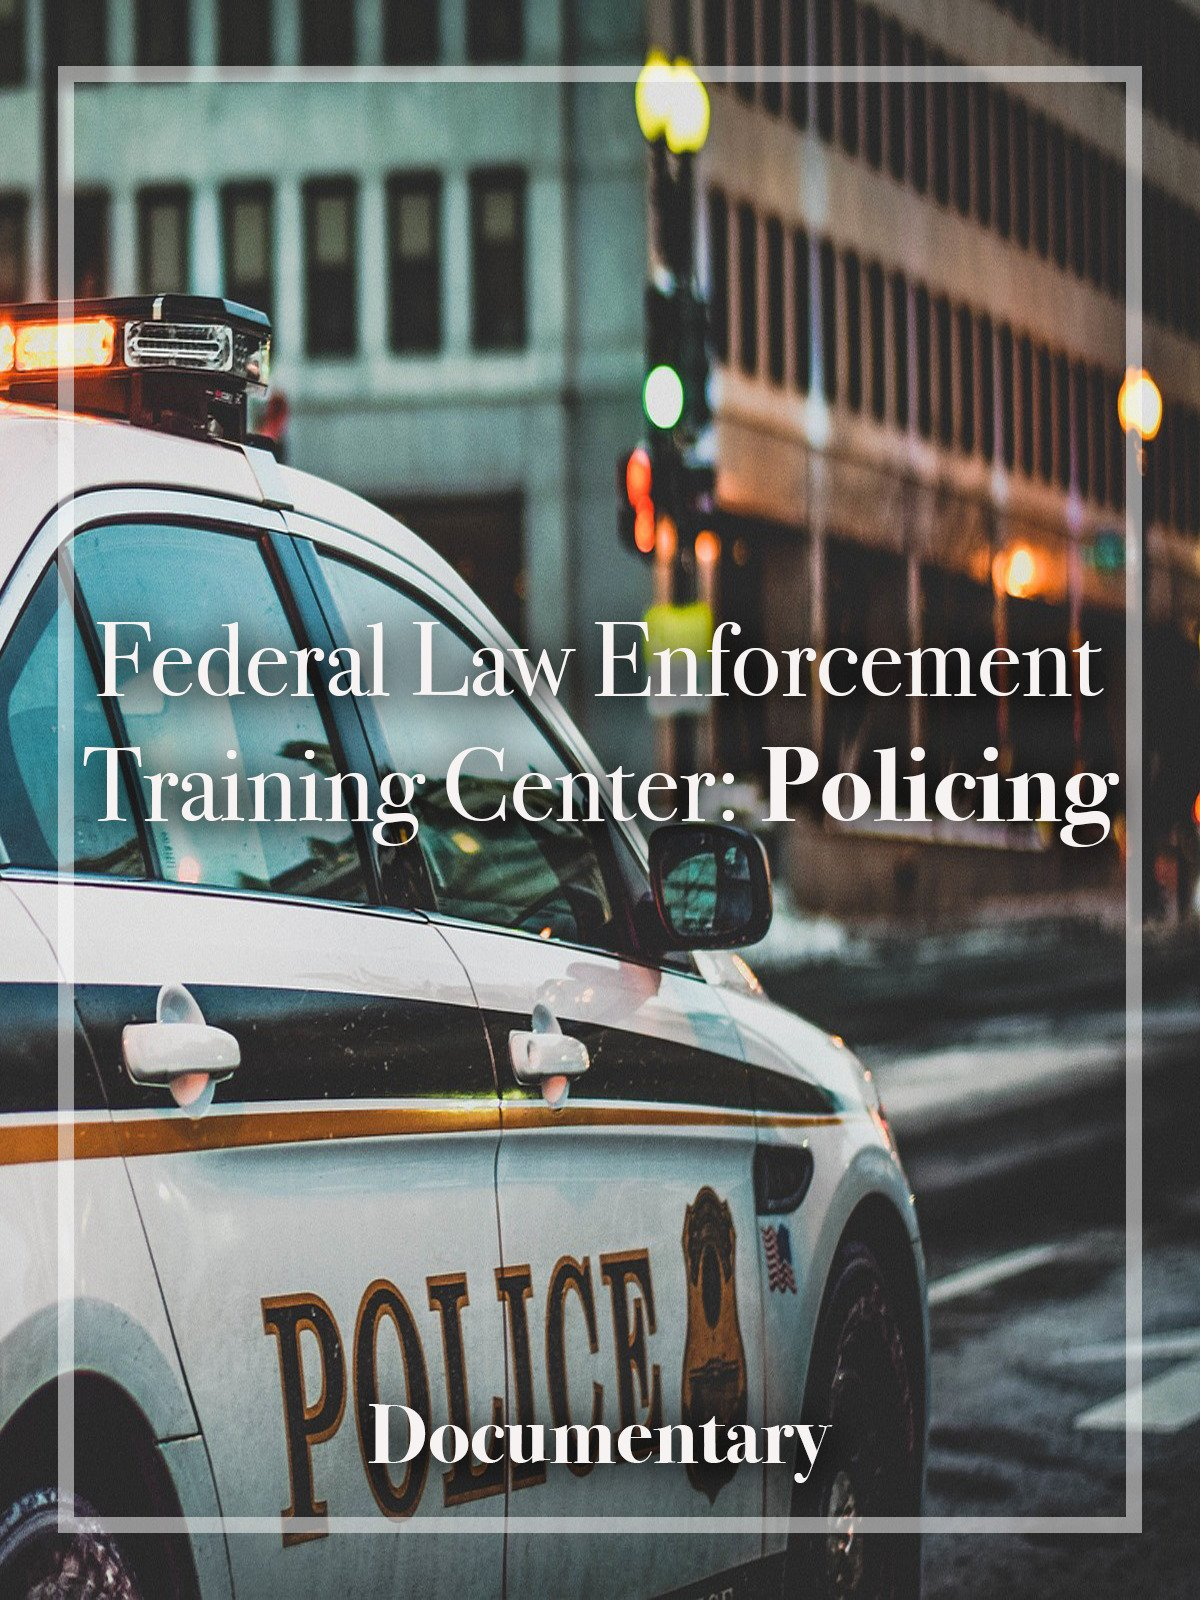 Federal Law Enforcement Training Center: Policing Documentary